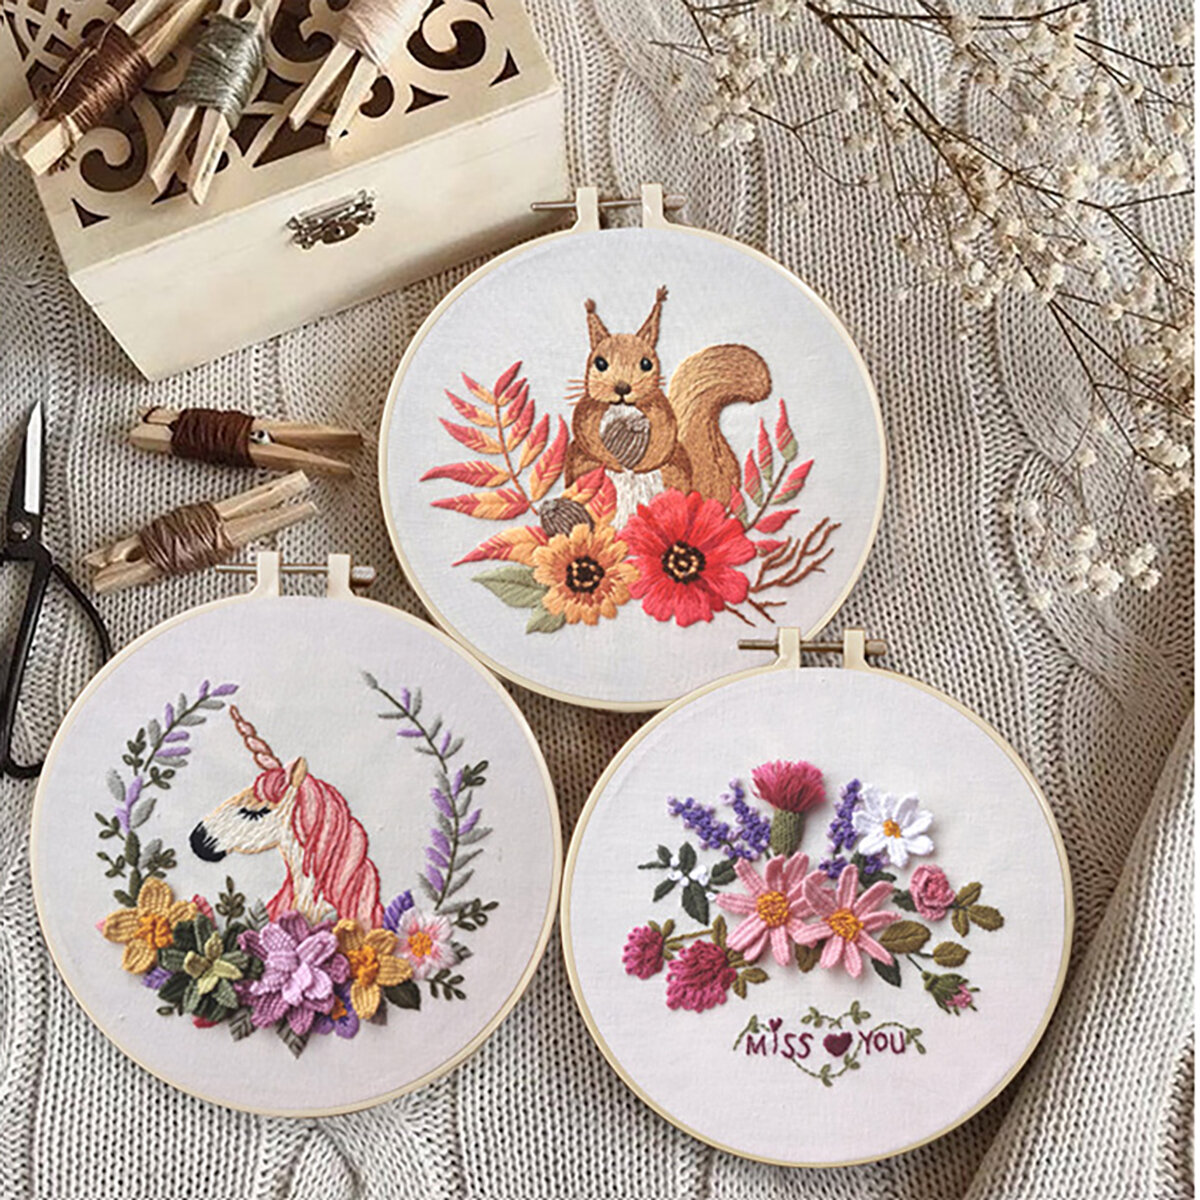 3D Embroidery Kit Needlework Embroidery Embroidery For Beginner DIY Art Sewing Craft